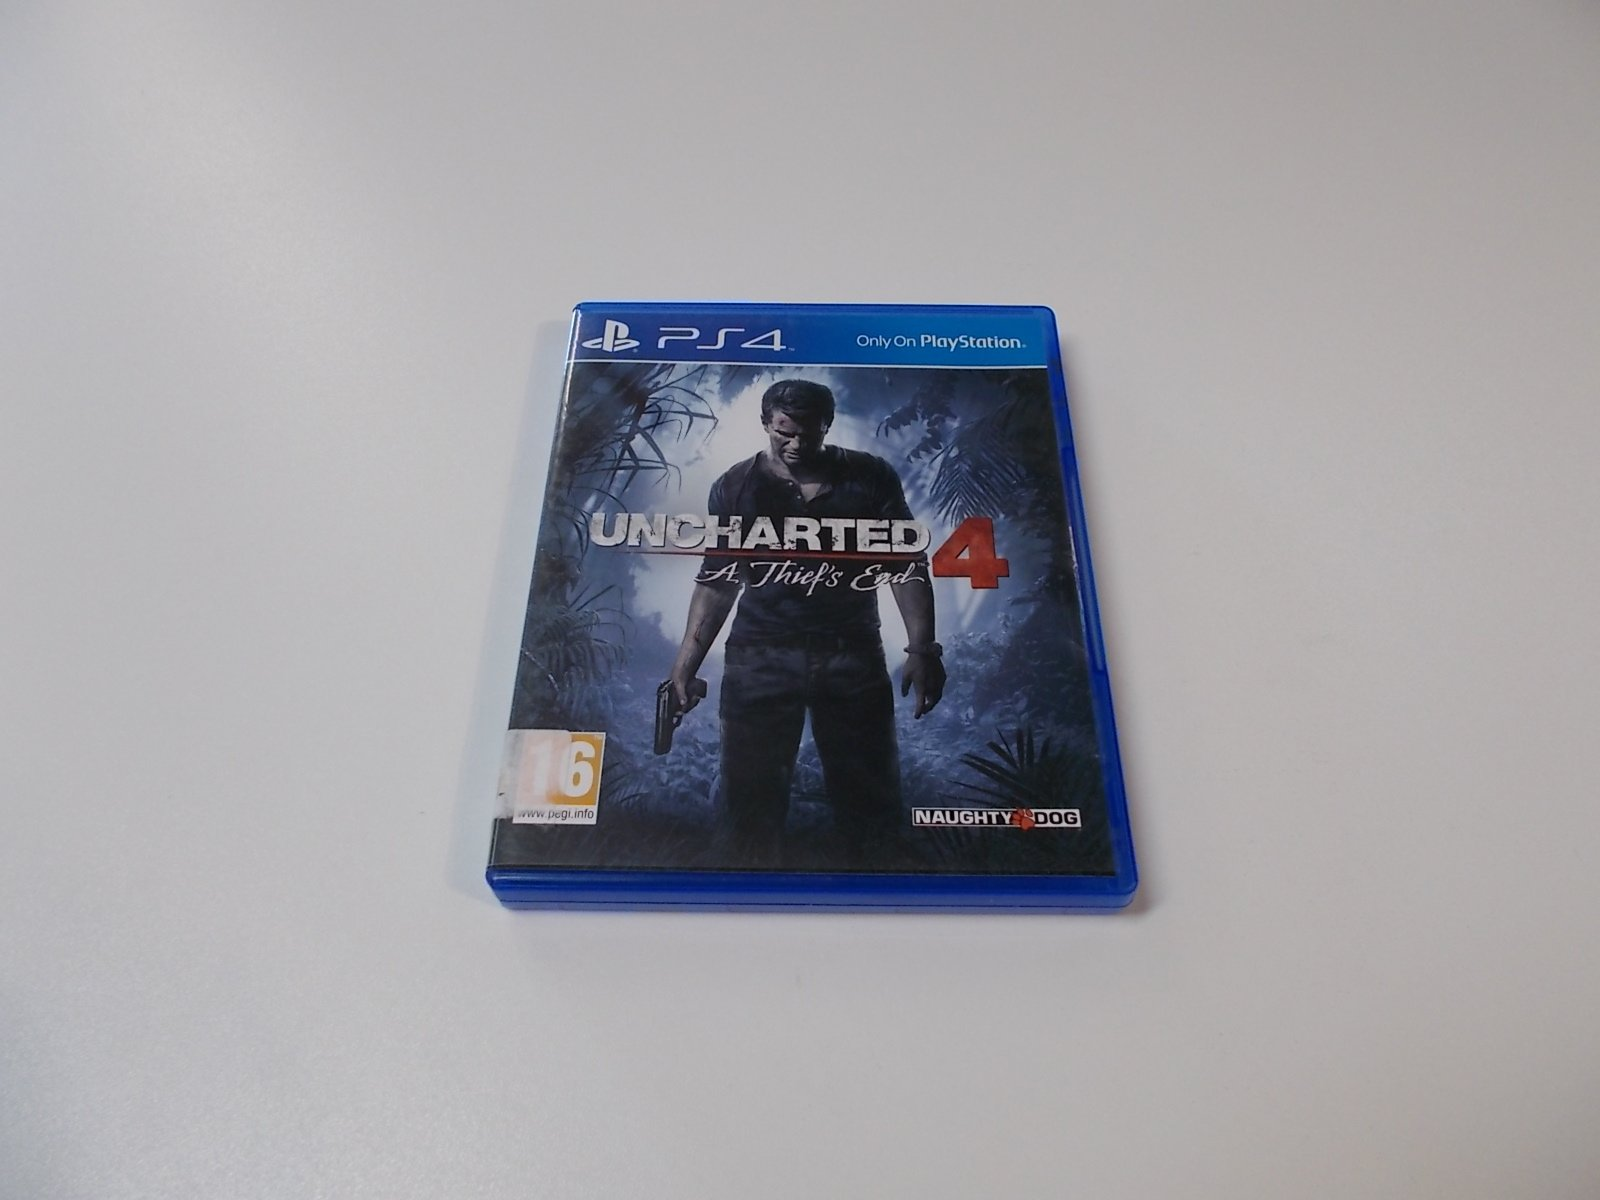 Uncharted 4: A Thiefs End - GRA Ps4 - Opole 0535